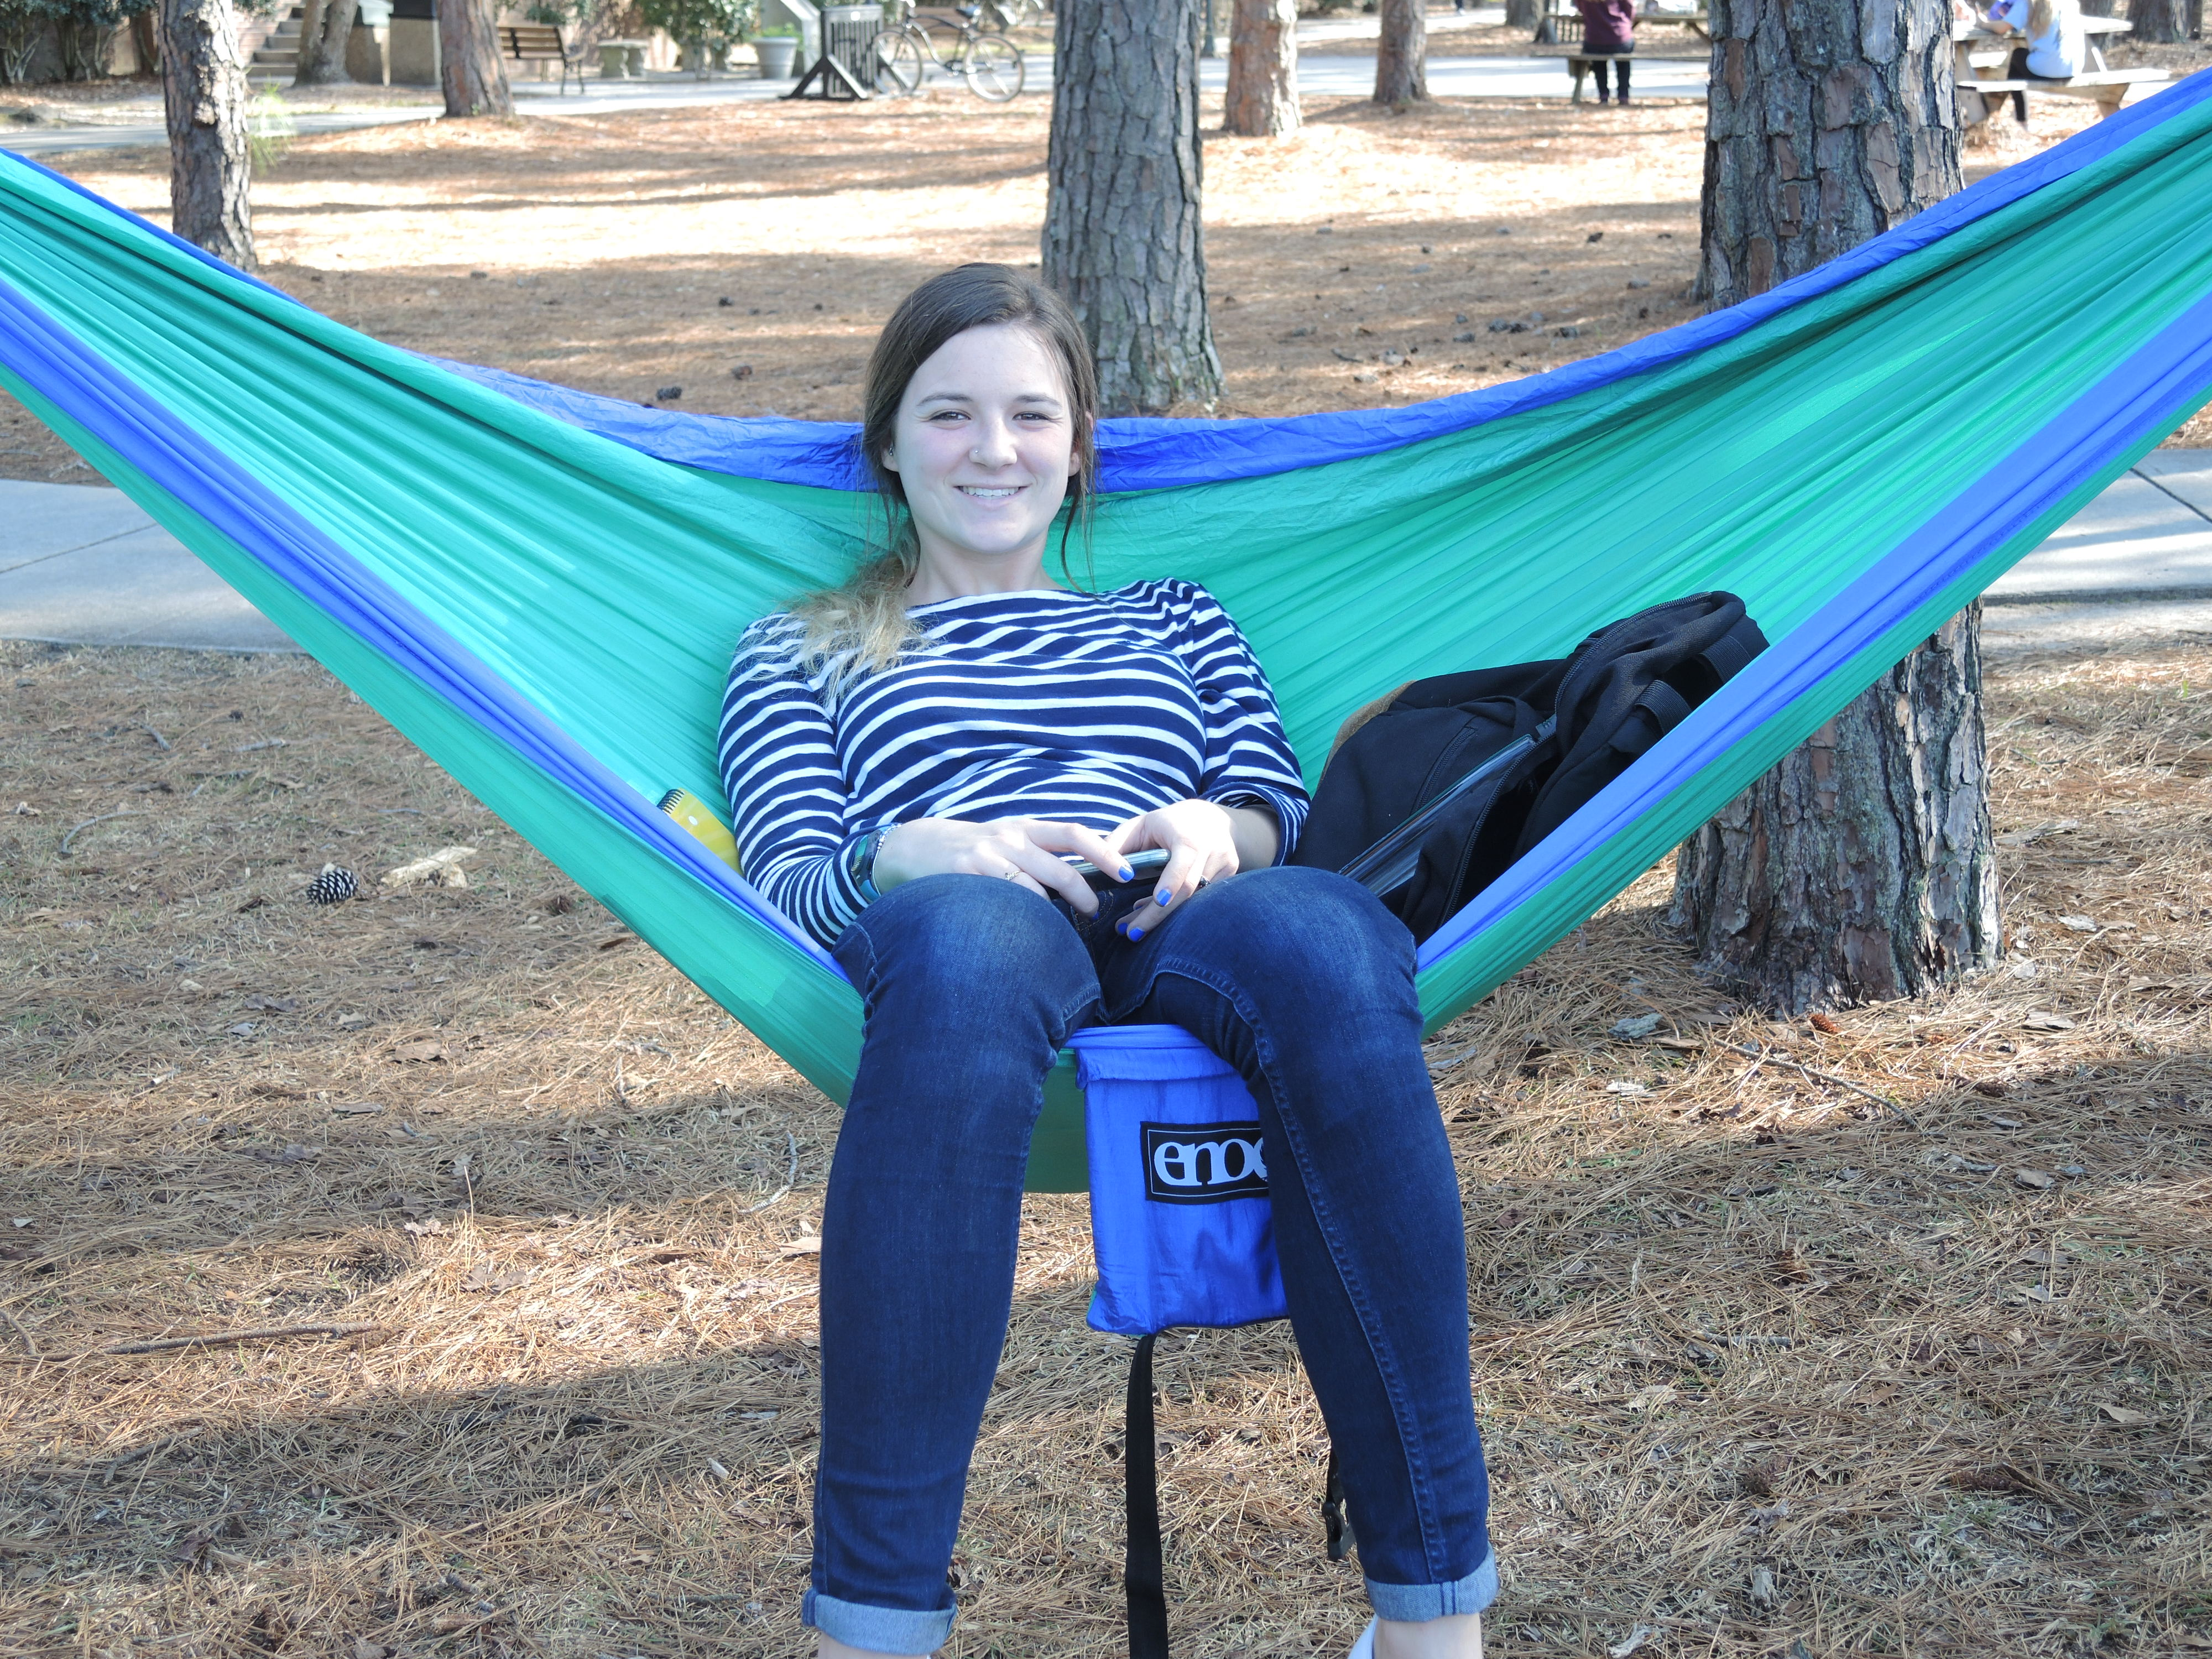 This student set up her hammock in the shade. Yes, there is a hammock club at Coastal.